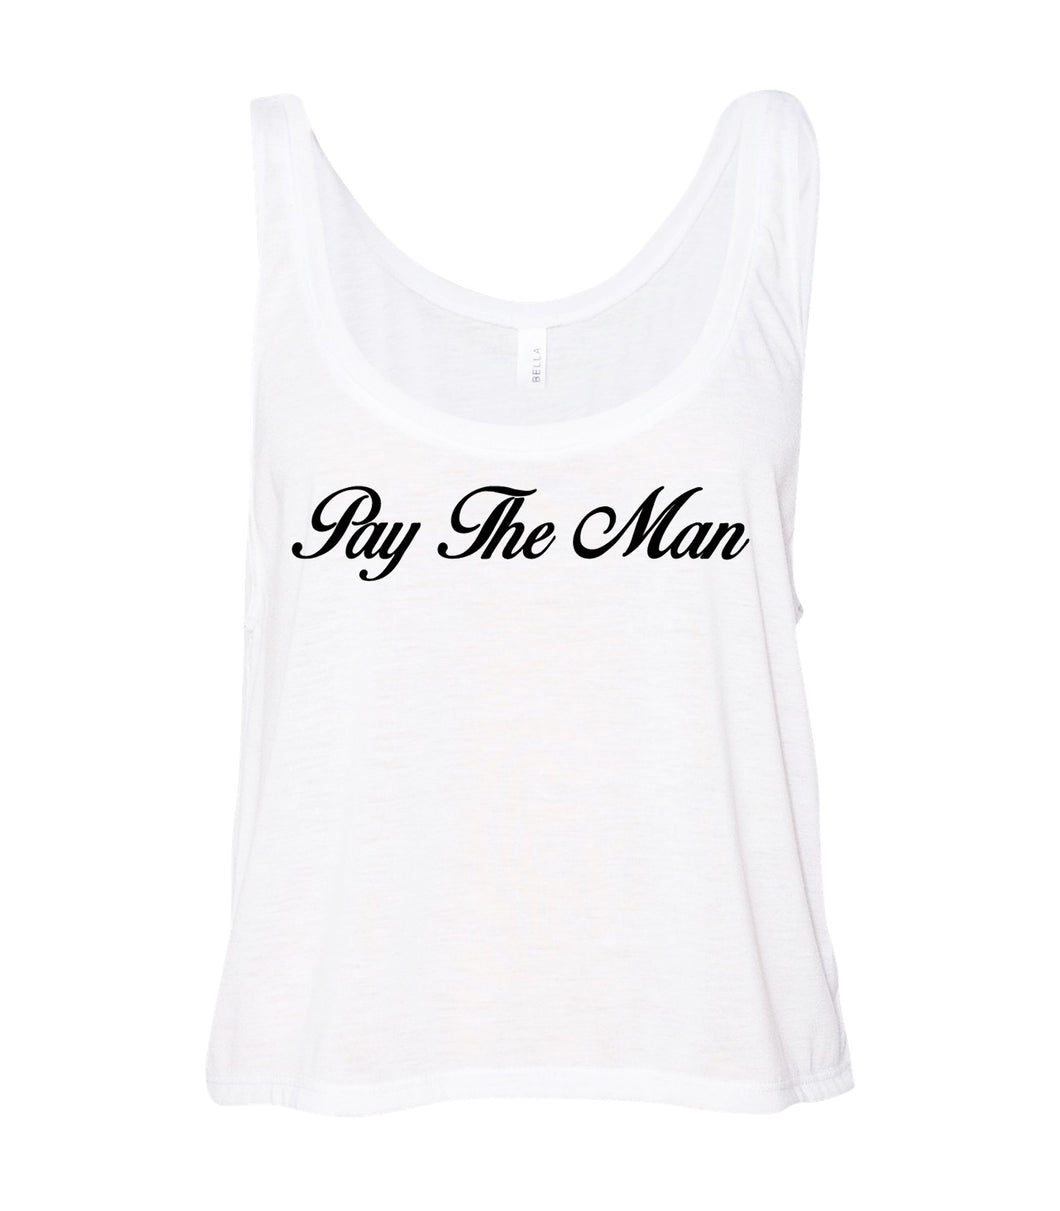 Pay the Man Tank Script white